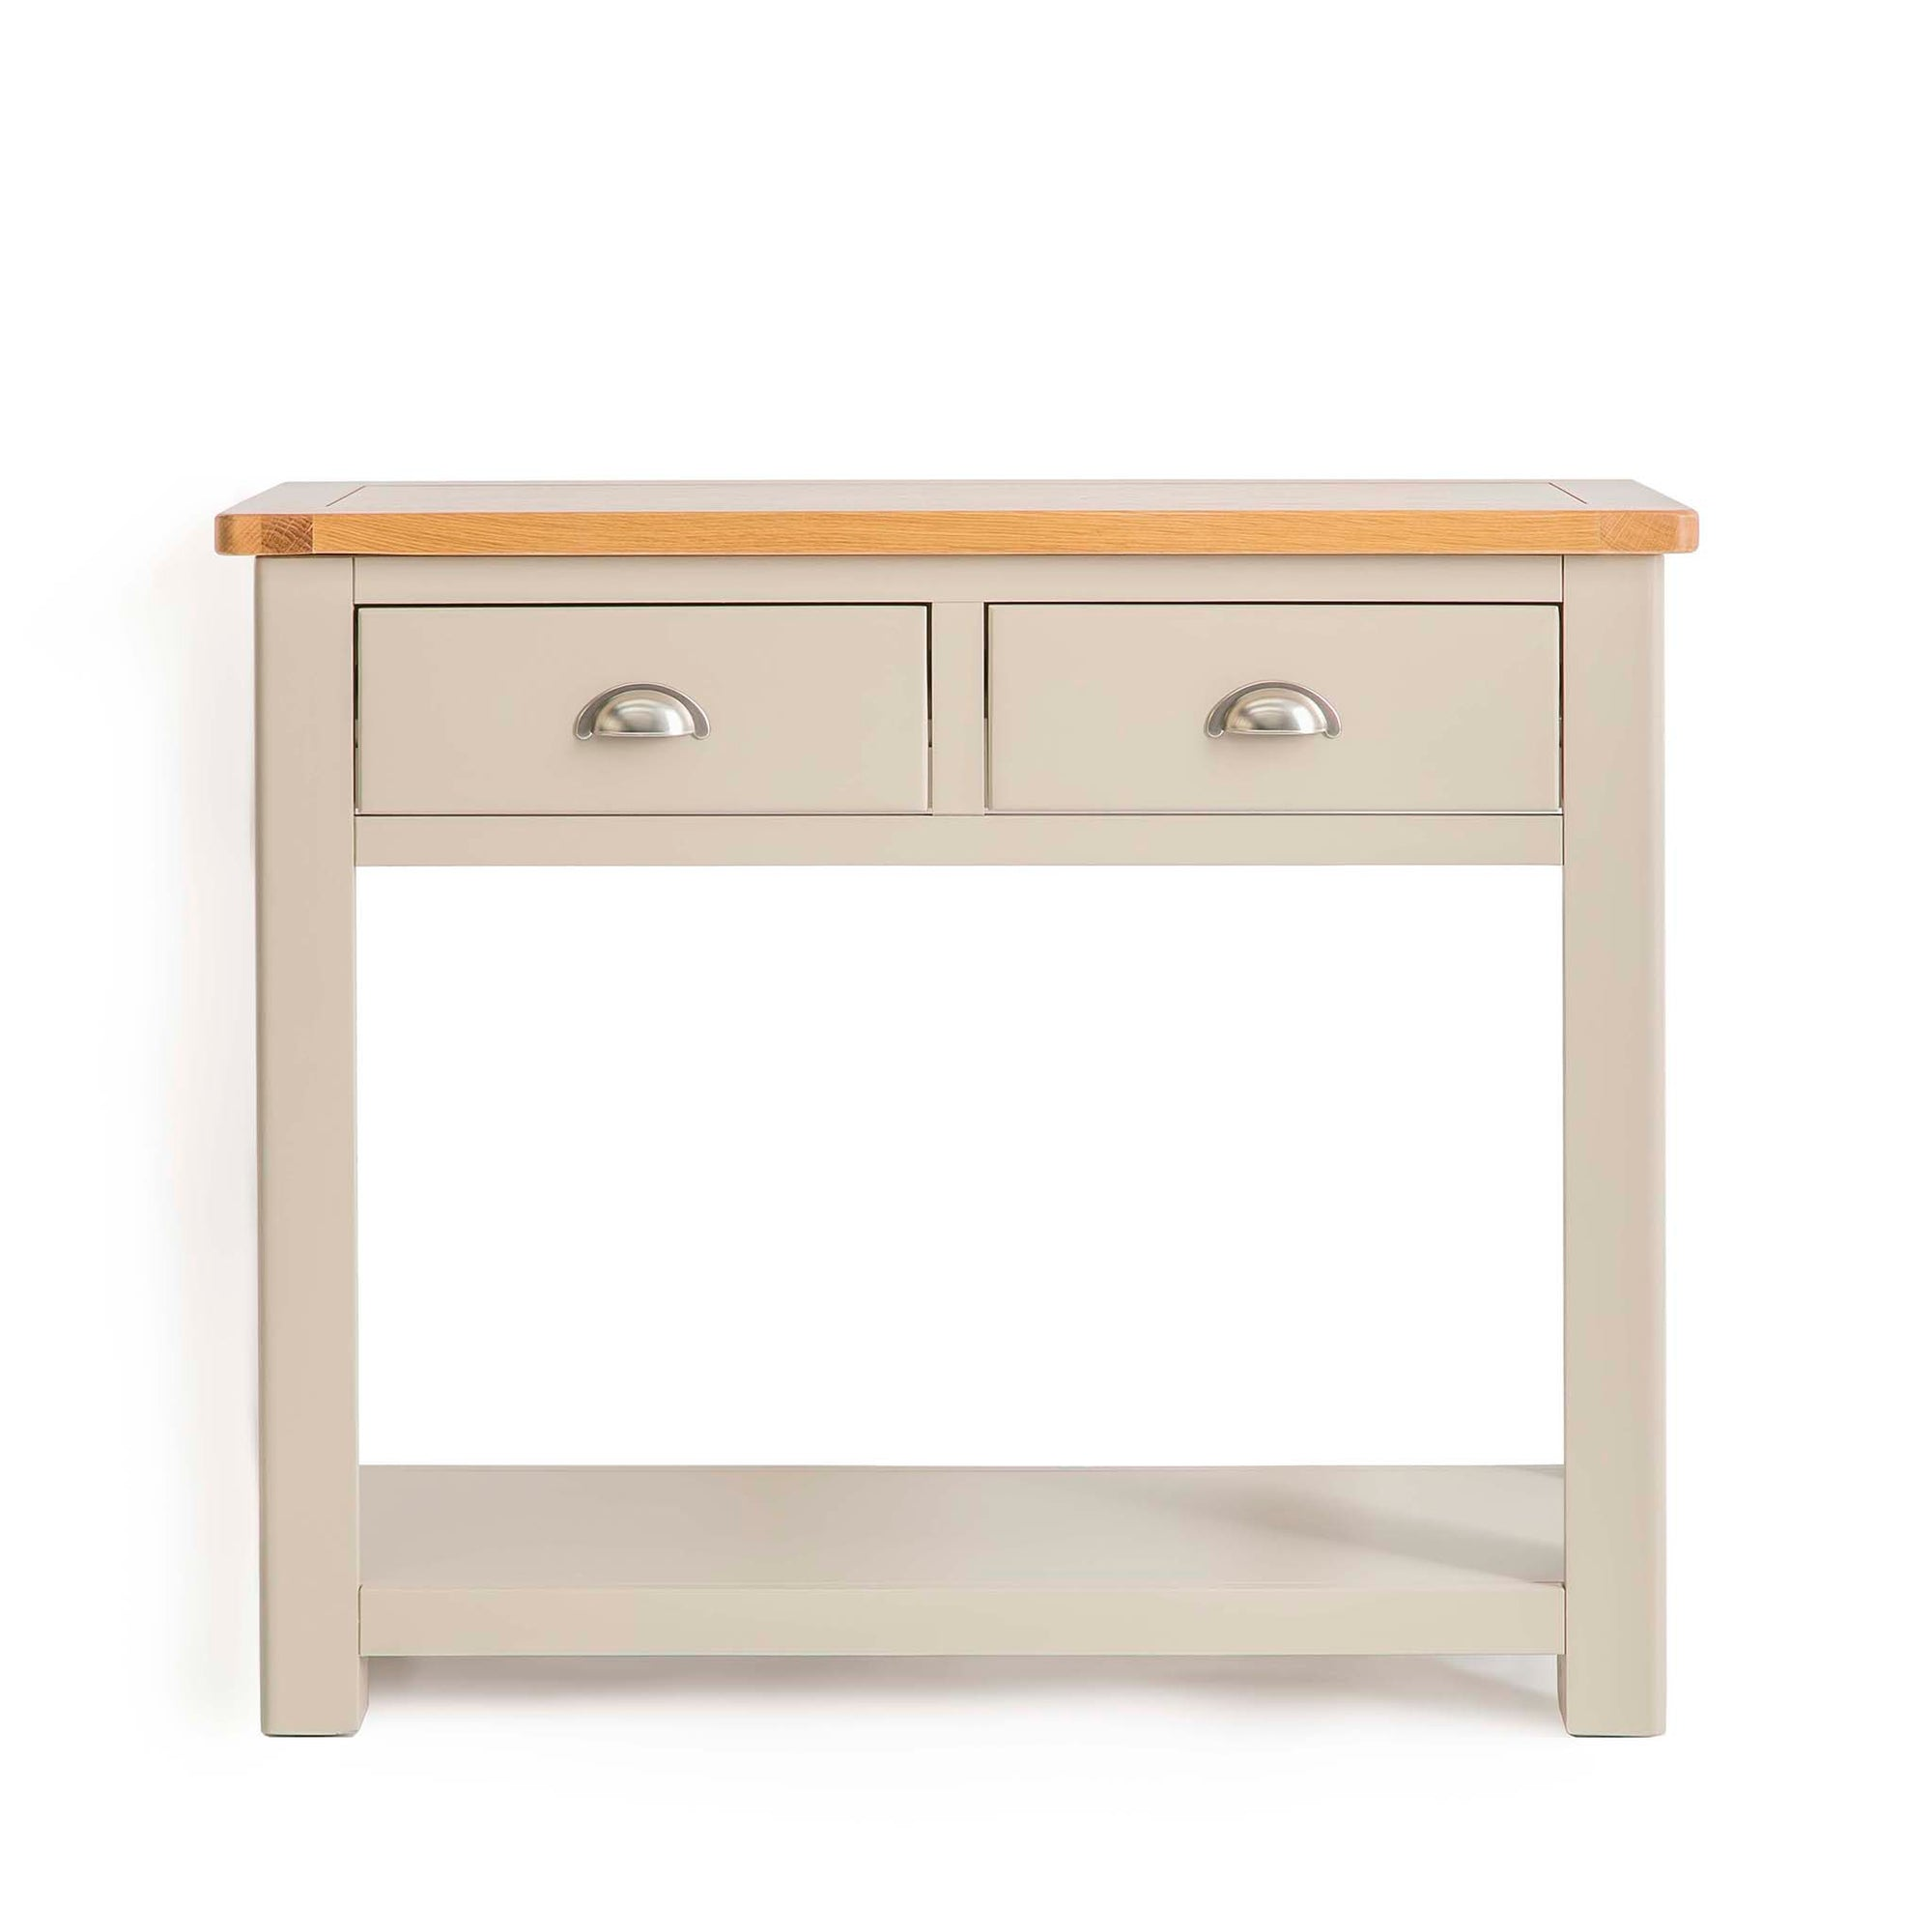 The Padstow Grey Wooden Console Table with 2 Drawers from Roseland Furniture